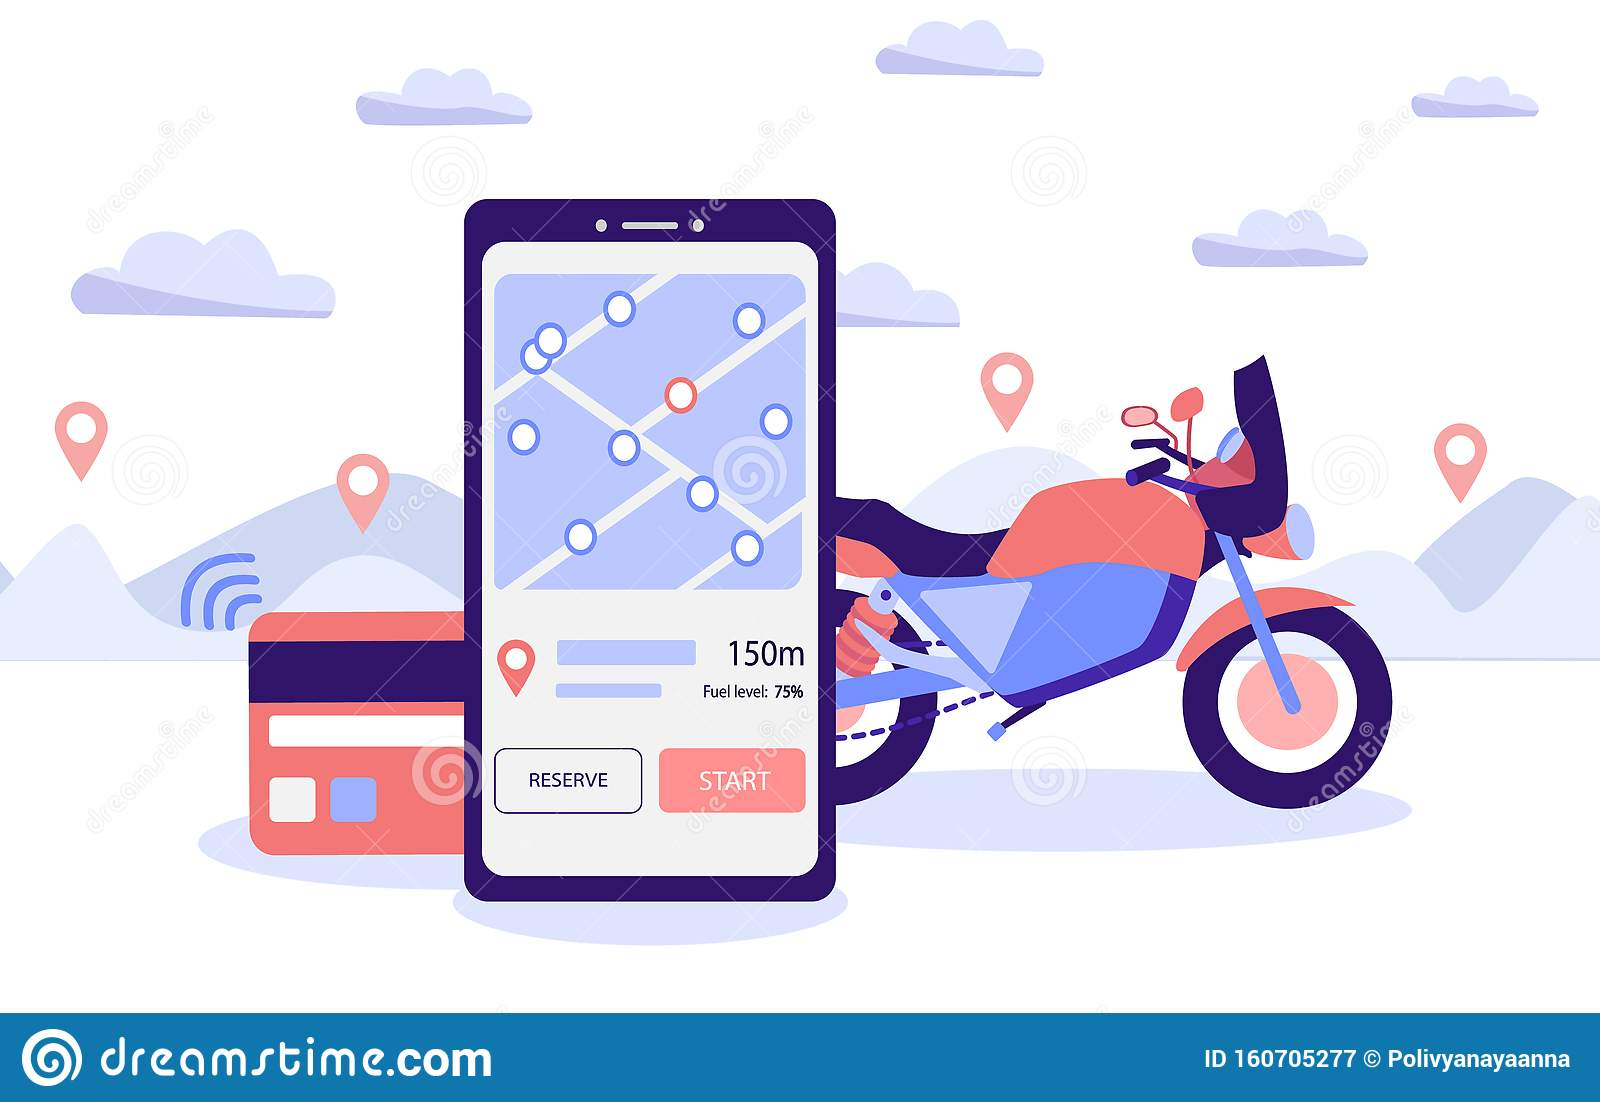 Mobile Motorcycle Rental Application Sports Bike Rental Carsharing Concept Motorbike With A Smartphone And Card With Contactless Stock Illustration Illustration Of Motorcycle Payment 160705277